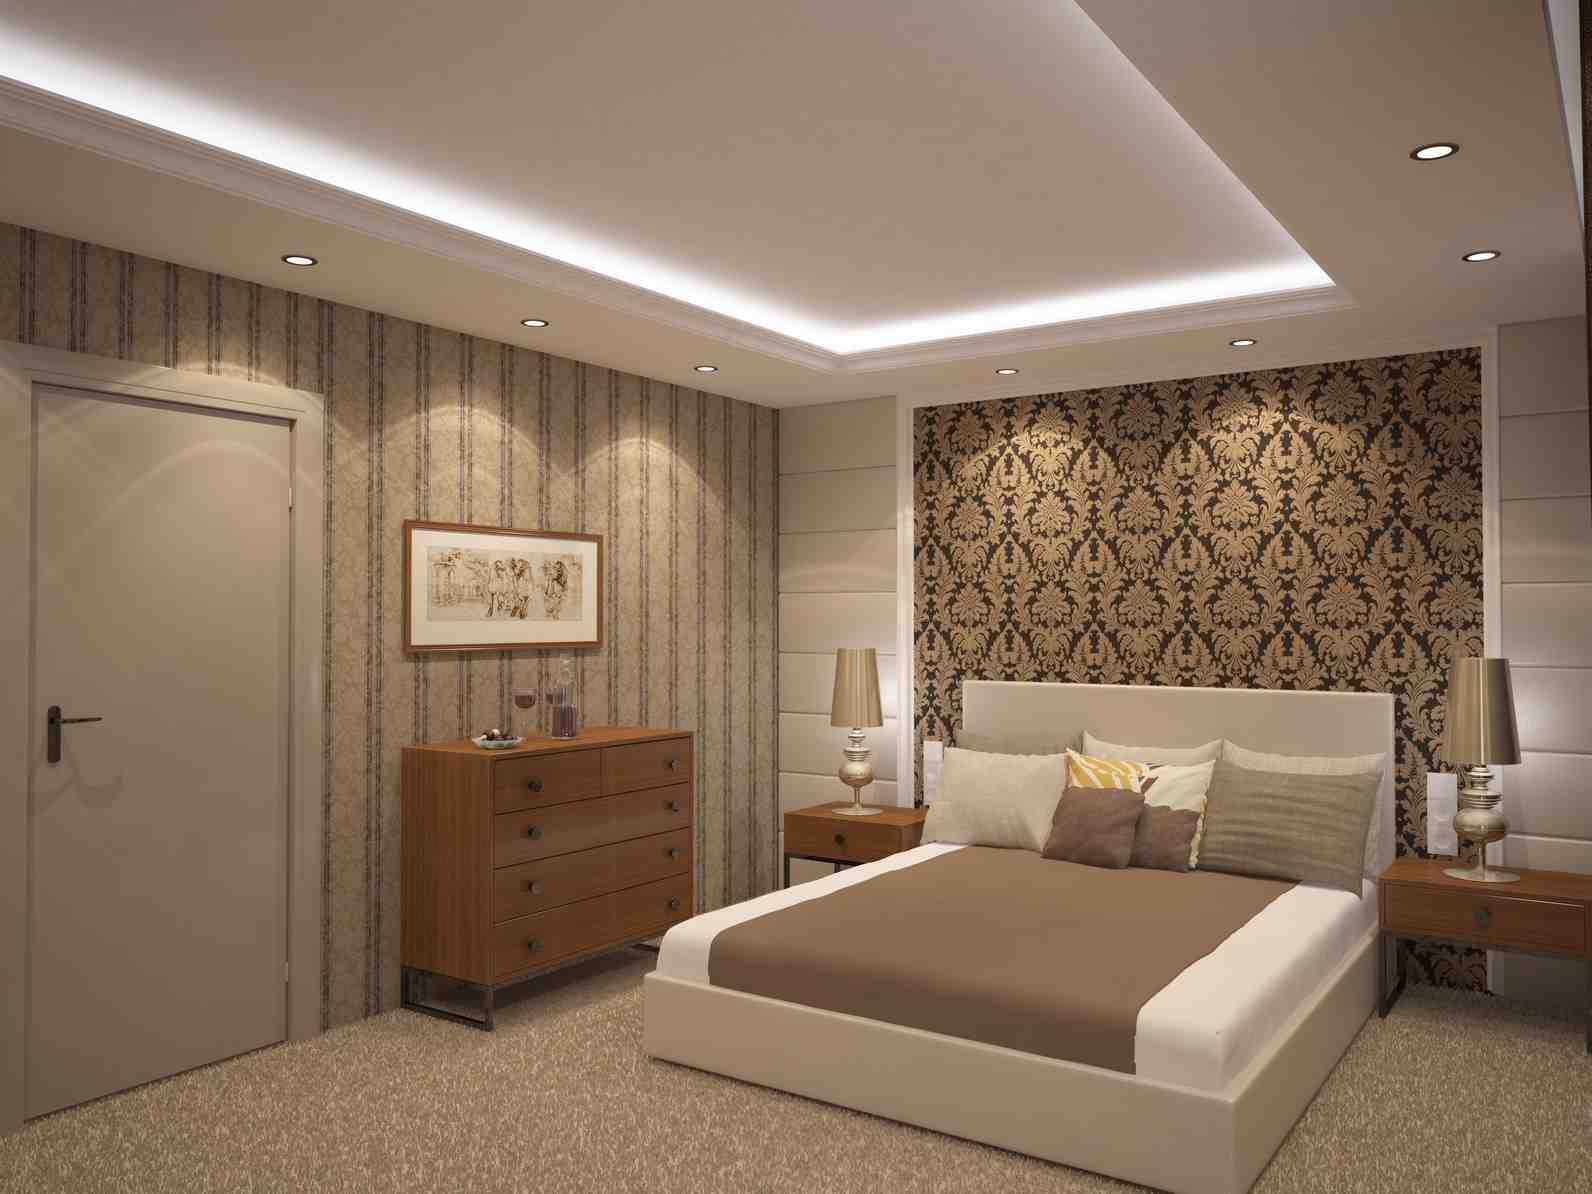 faux plafond pvc chambre solutions pour la d coration int rieure de votre maison. Black Bedroom Furniture Sets. Home Design Ideas